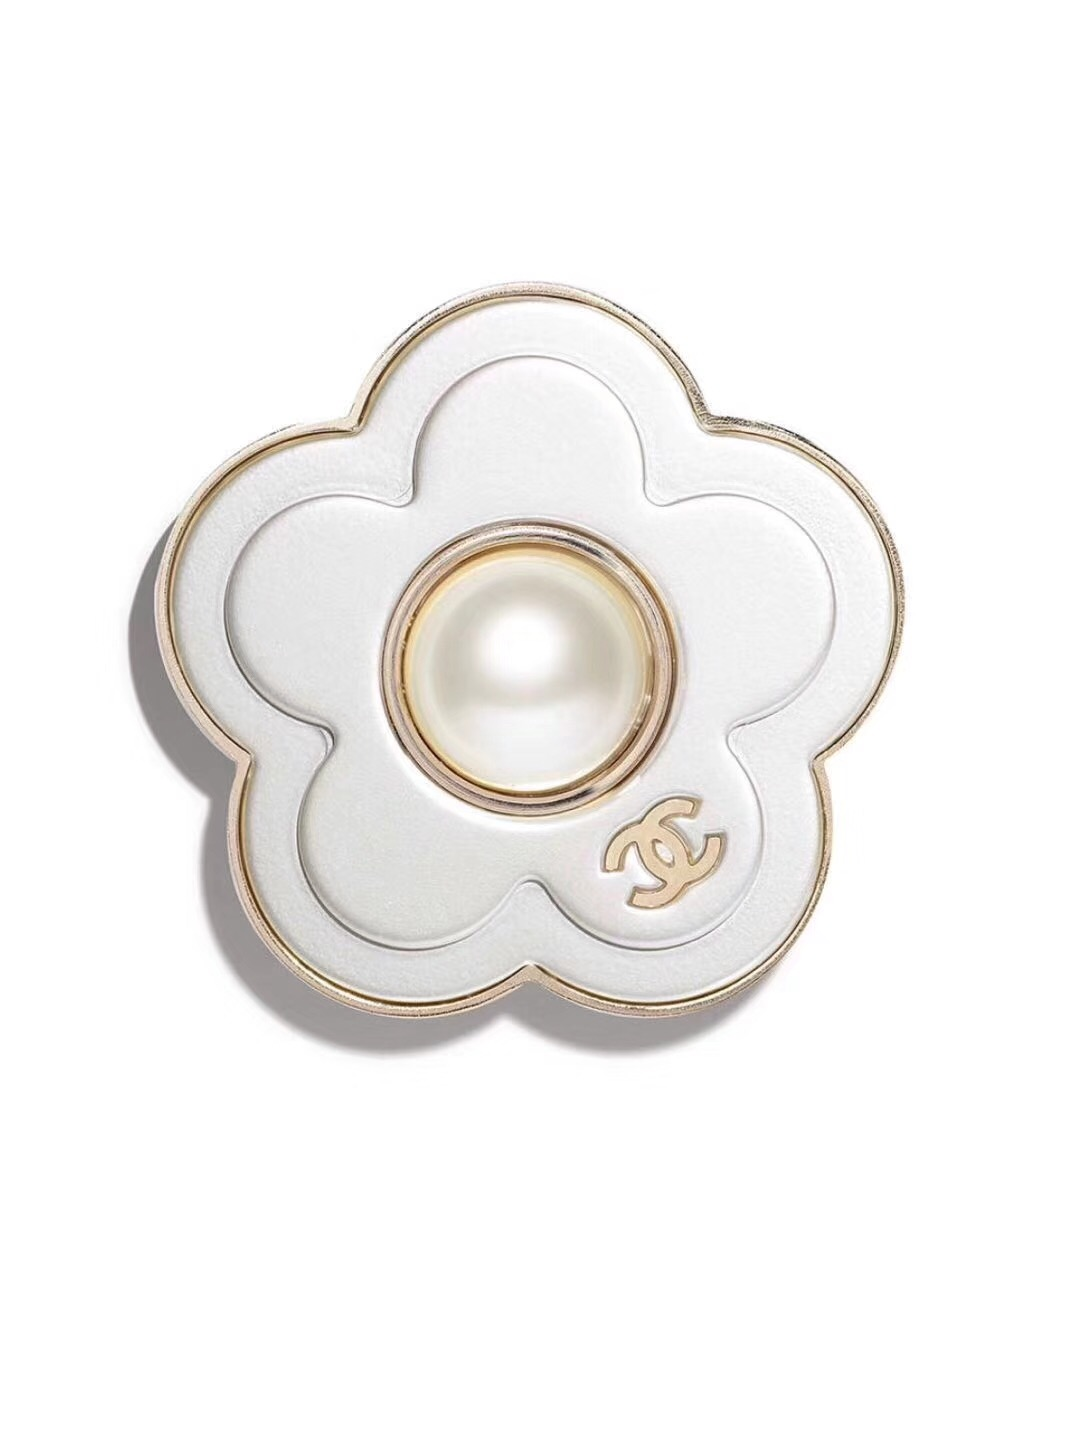 Chanel Brooch 44584